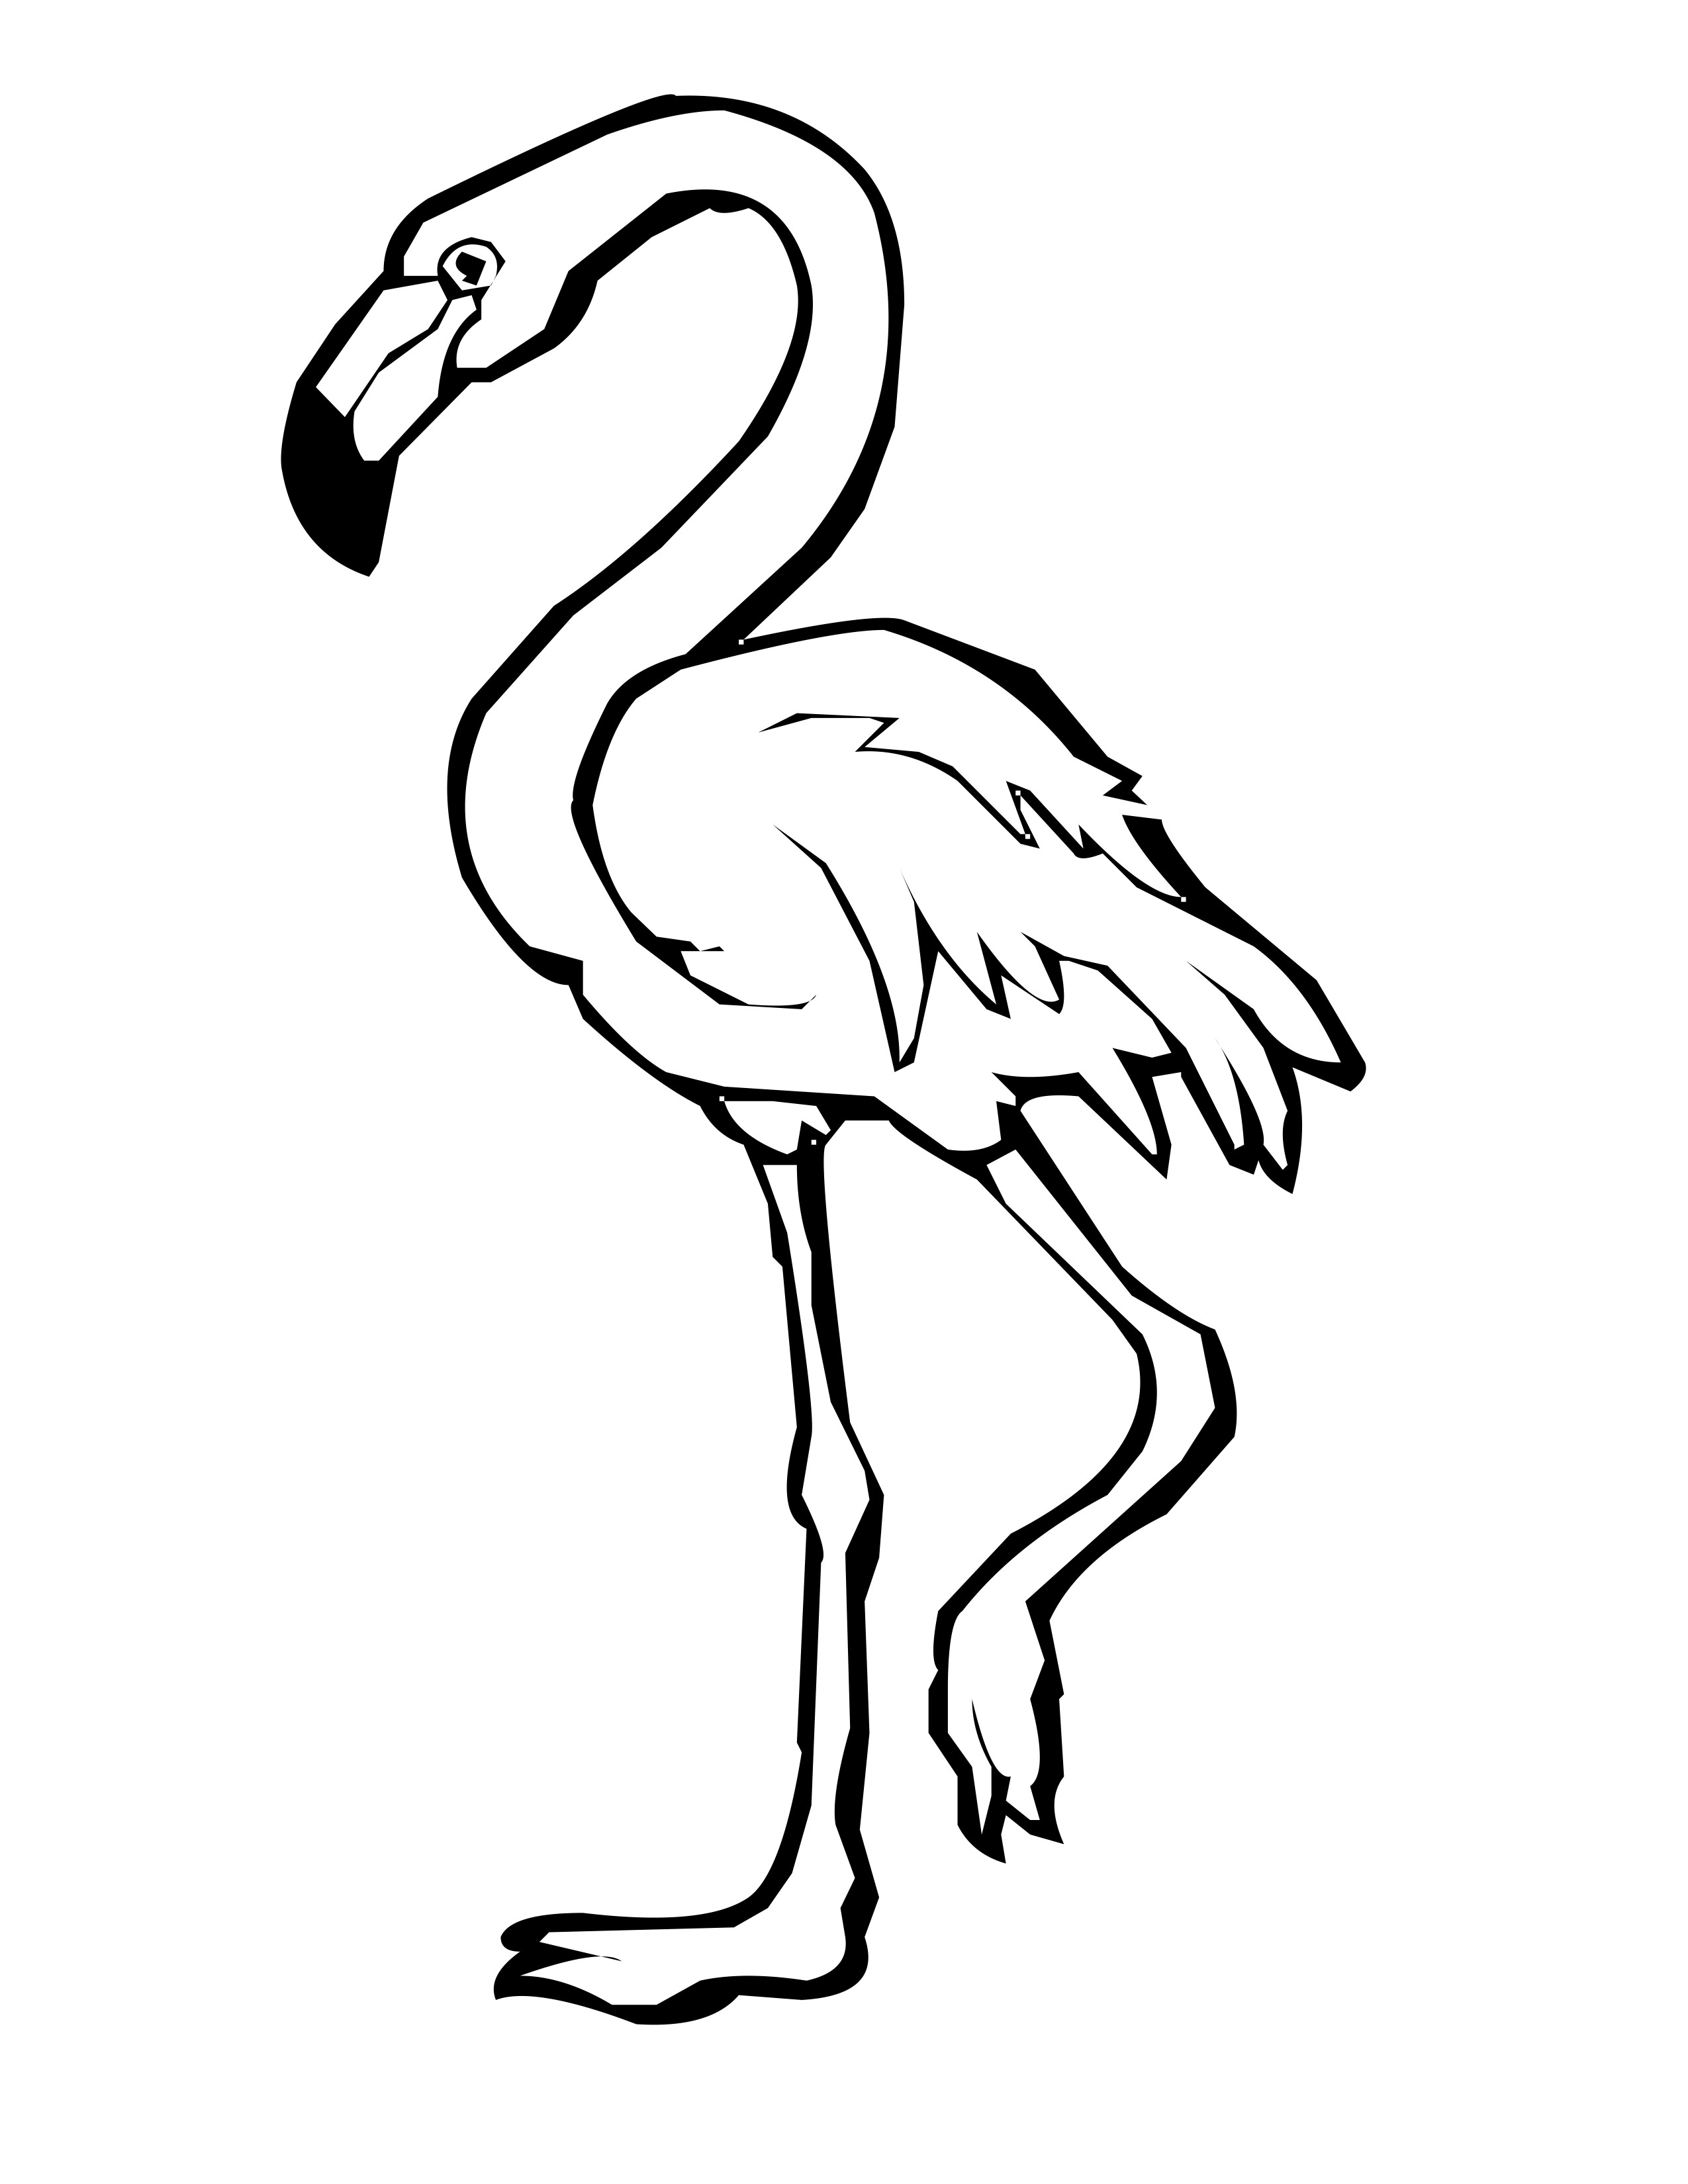 coloring pages flamingo flamingo coloring pages to download and print for free coloring flamingo pages